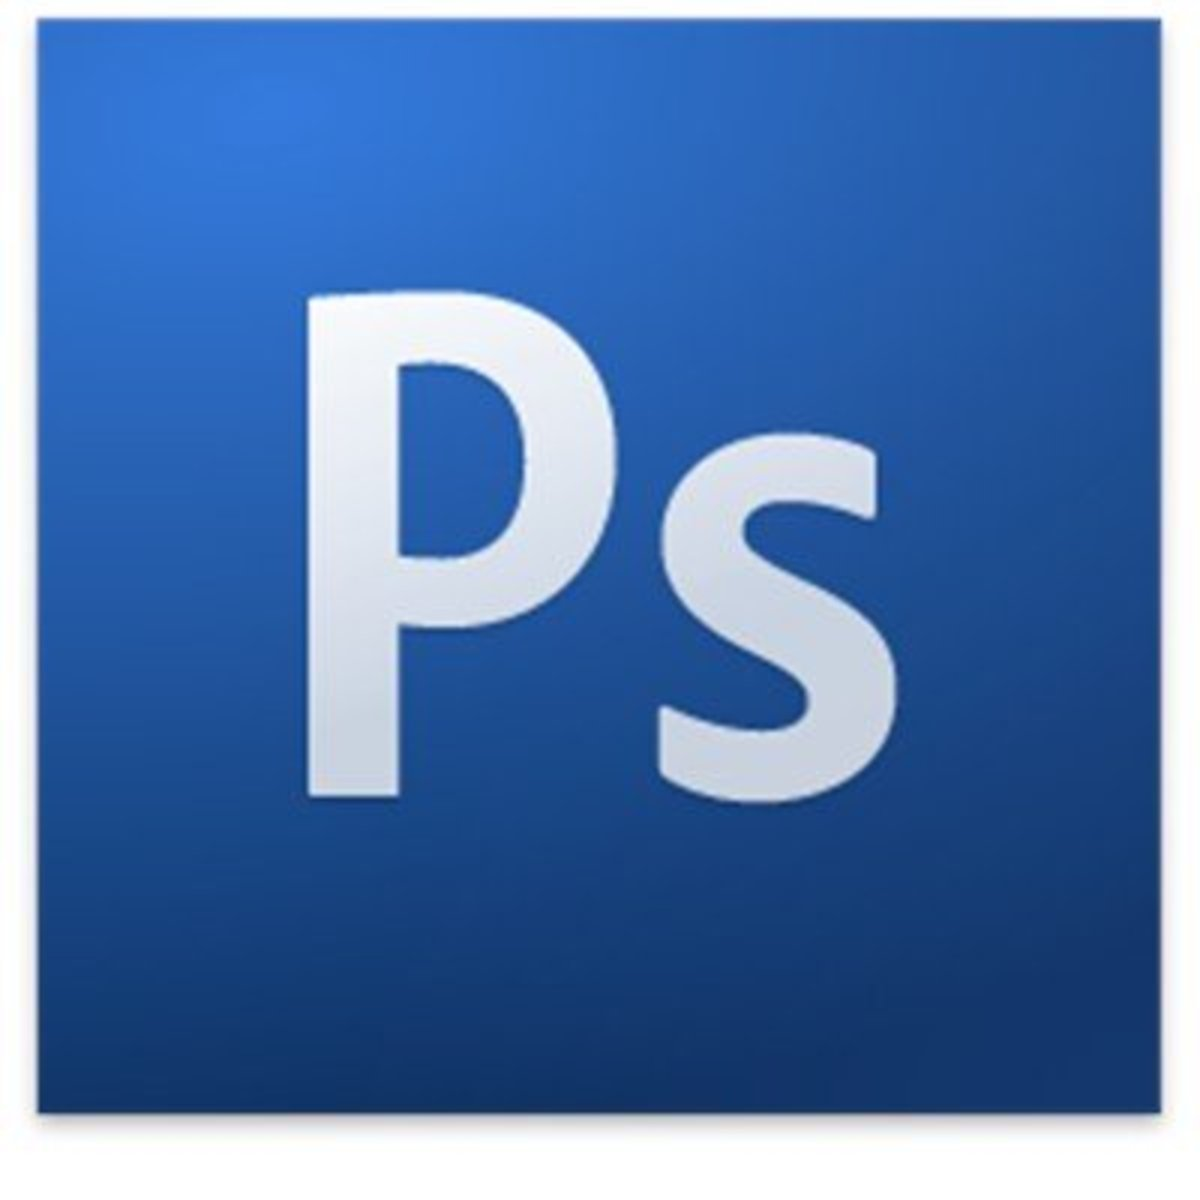 How to Use Photoshop to Make a Fake ID or Edit Documents